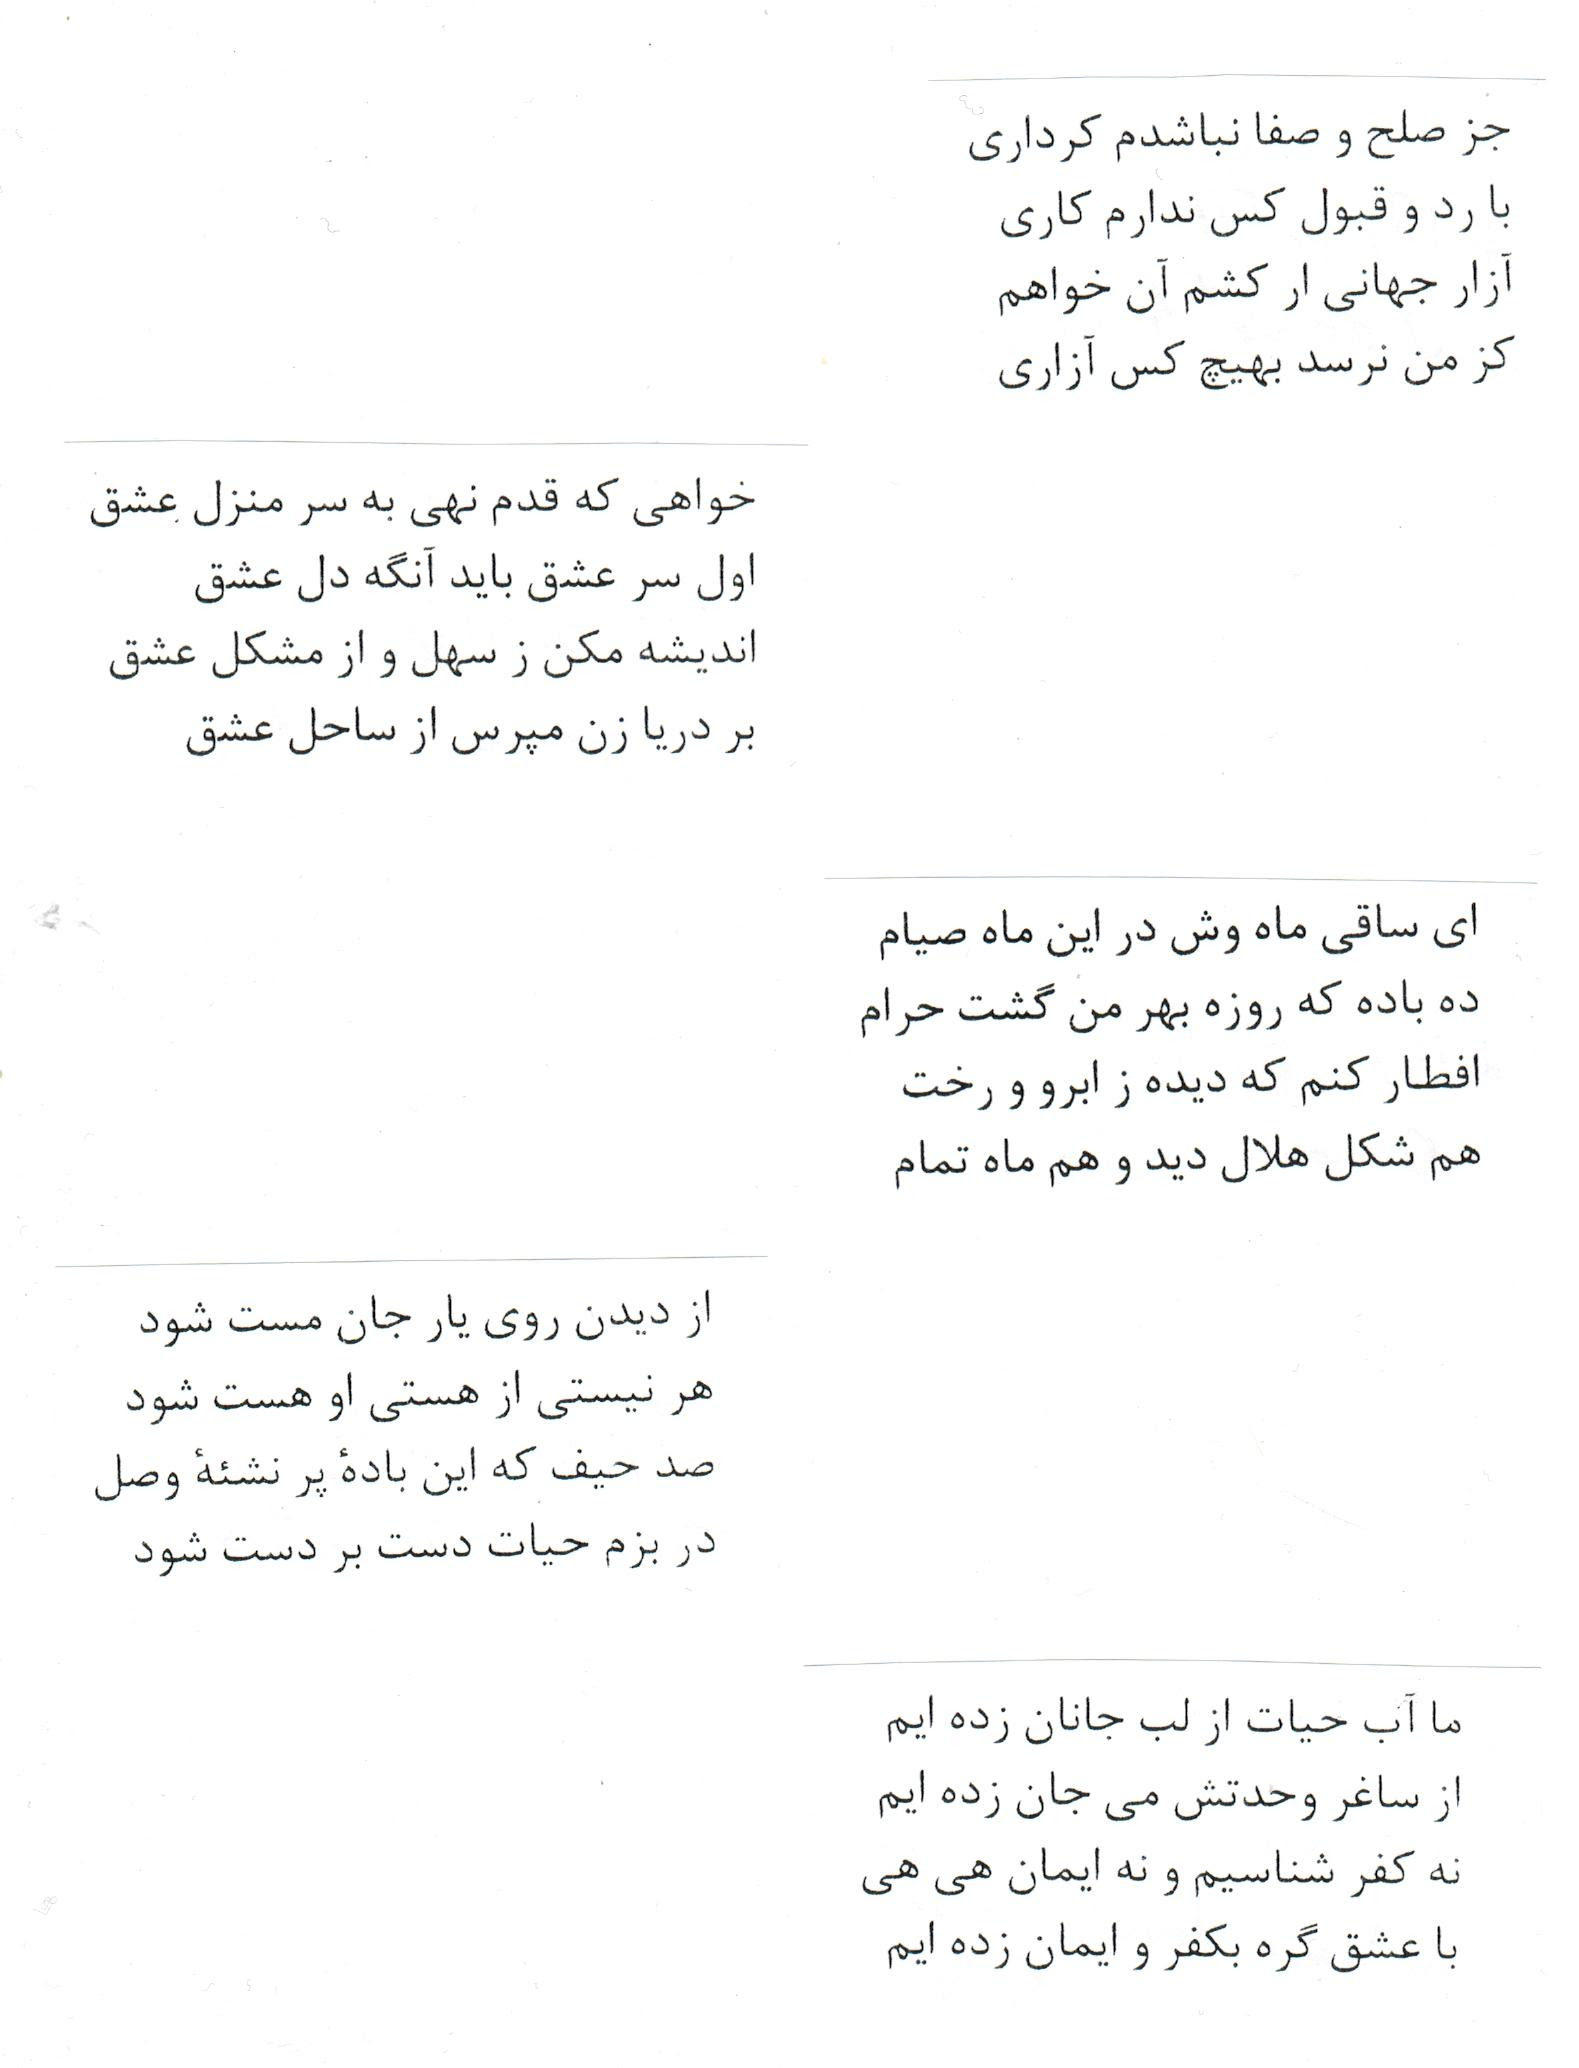 5 persian poems 20th century1